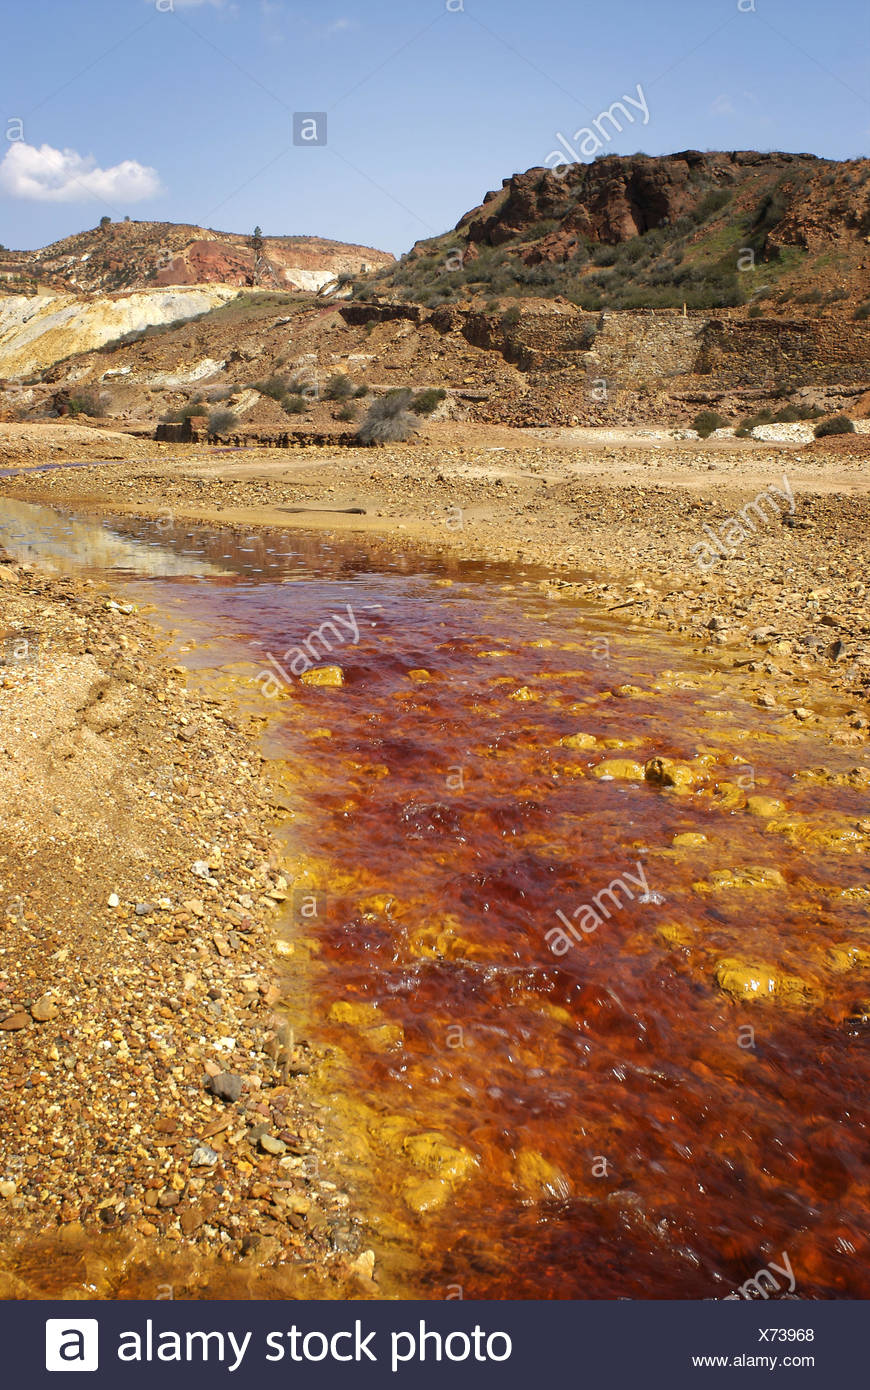 Rio Tinto river, its deep reddish hue is due to iron dissolved in the water. Huelva province, Andalusia, Spain - Stock Image